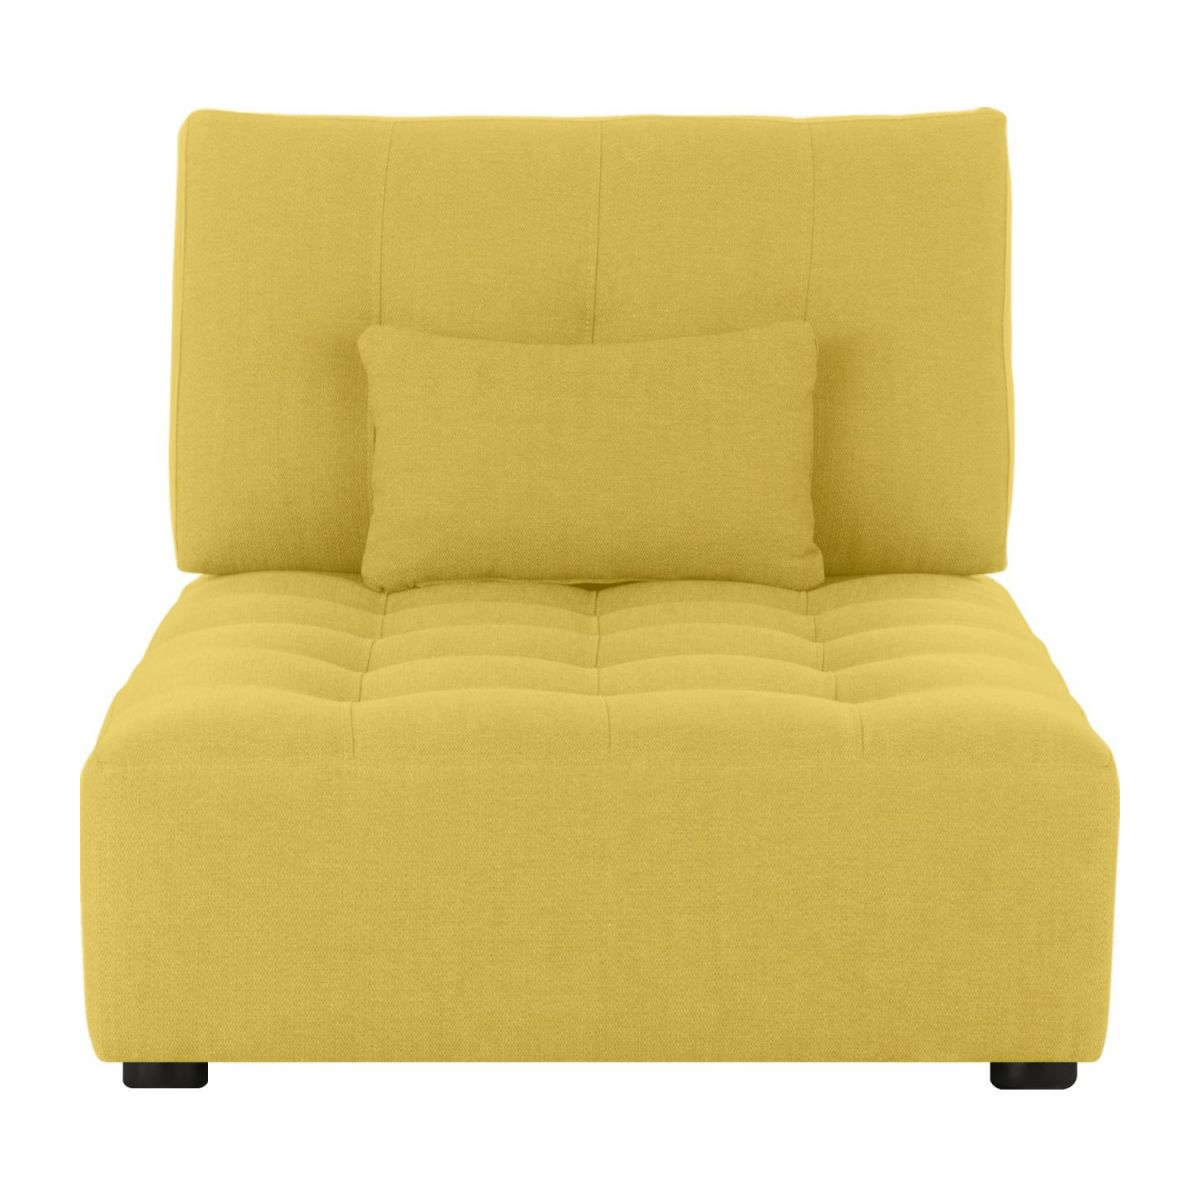 Chaiselongue de tela-amarillo mostaza n°3